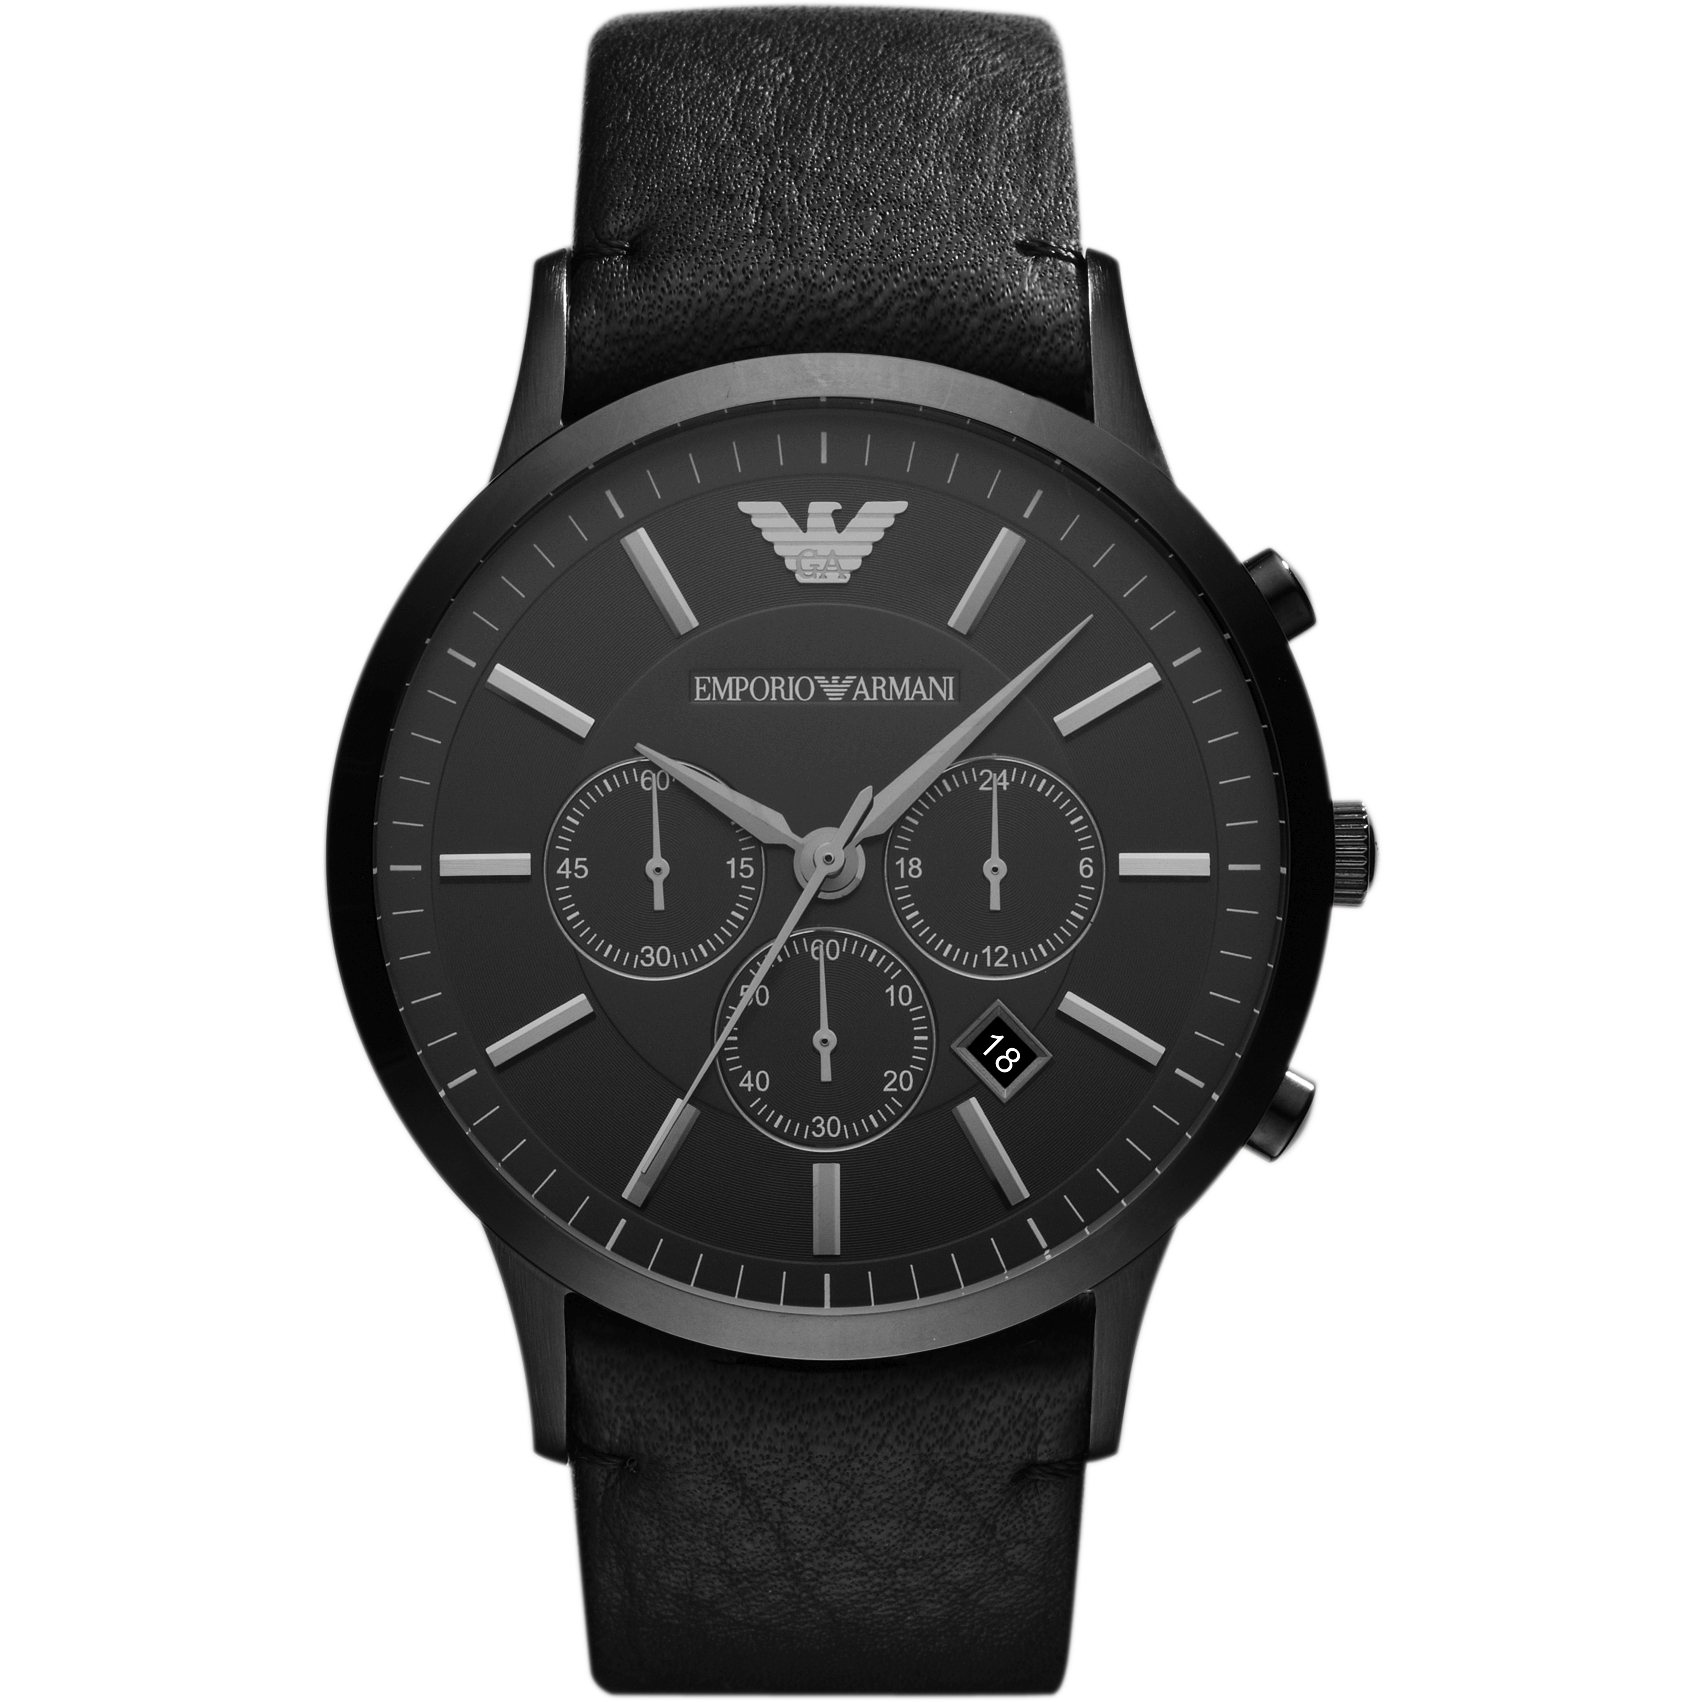 Gents Emporio Armani Chronograph Watch (AR2461)  ffd8bcfb3